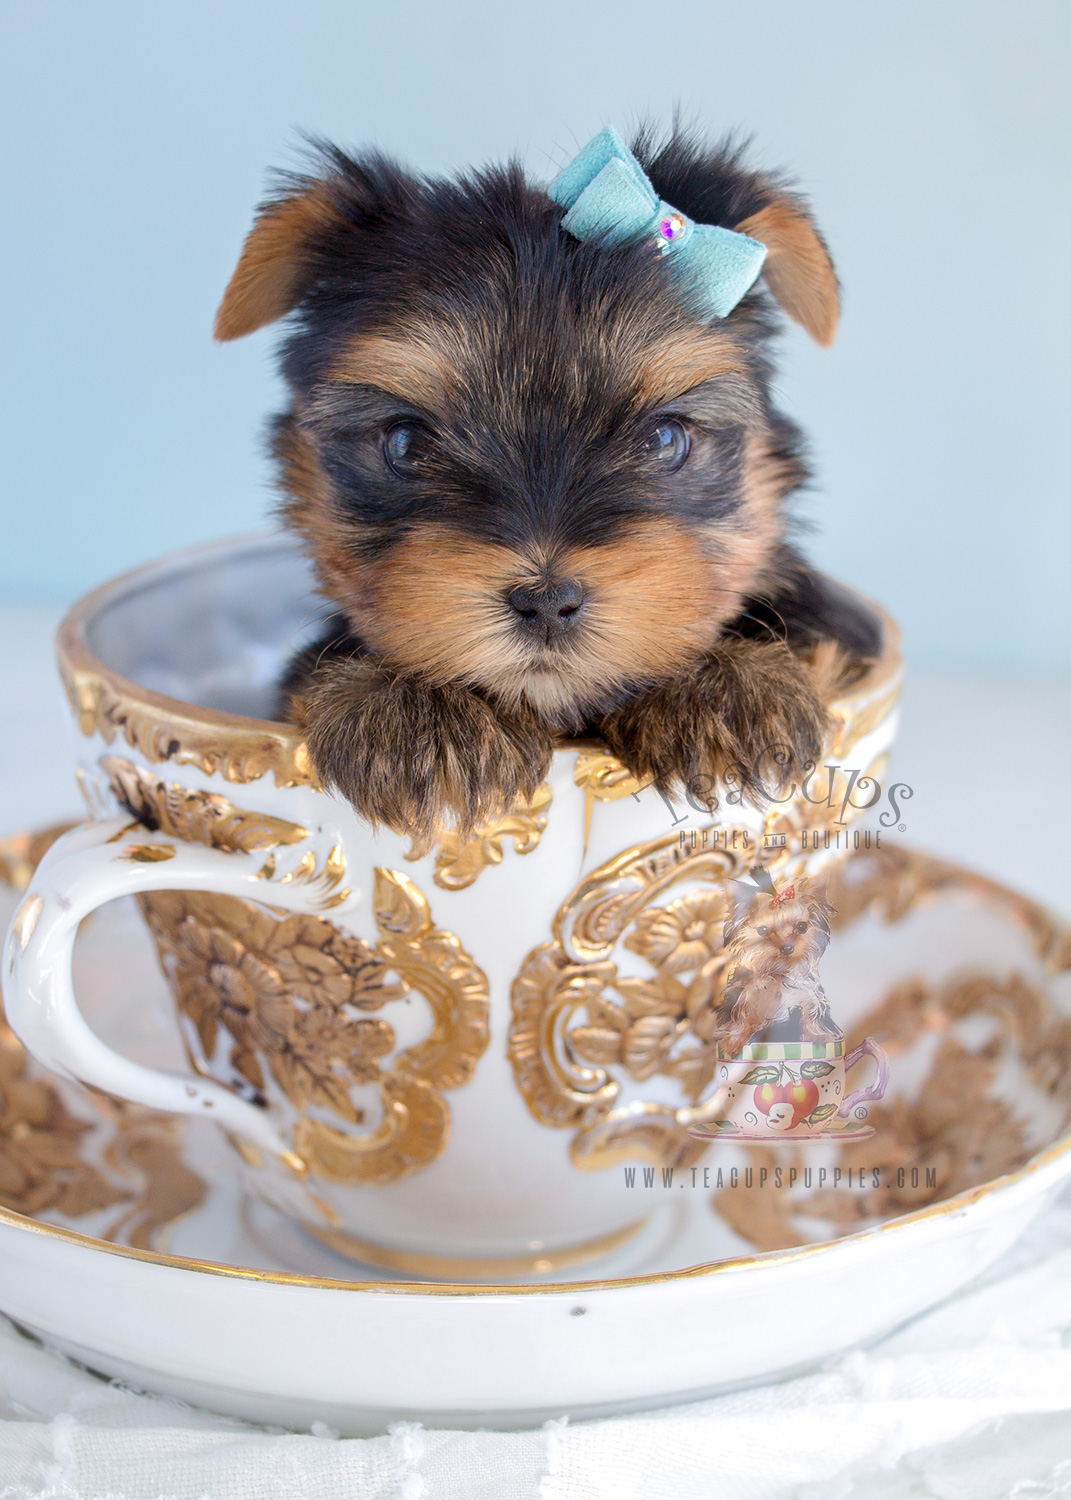 Puppy For Sale #284 Yorkie